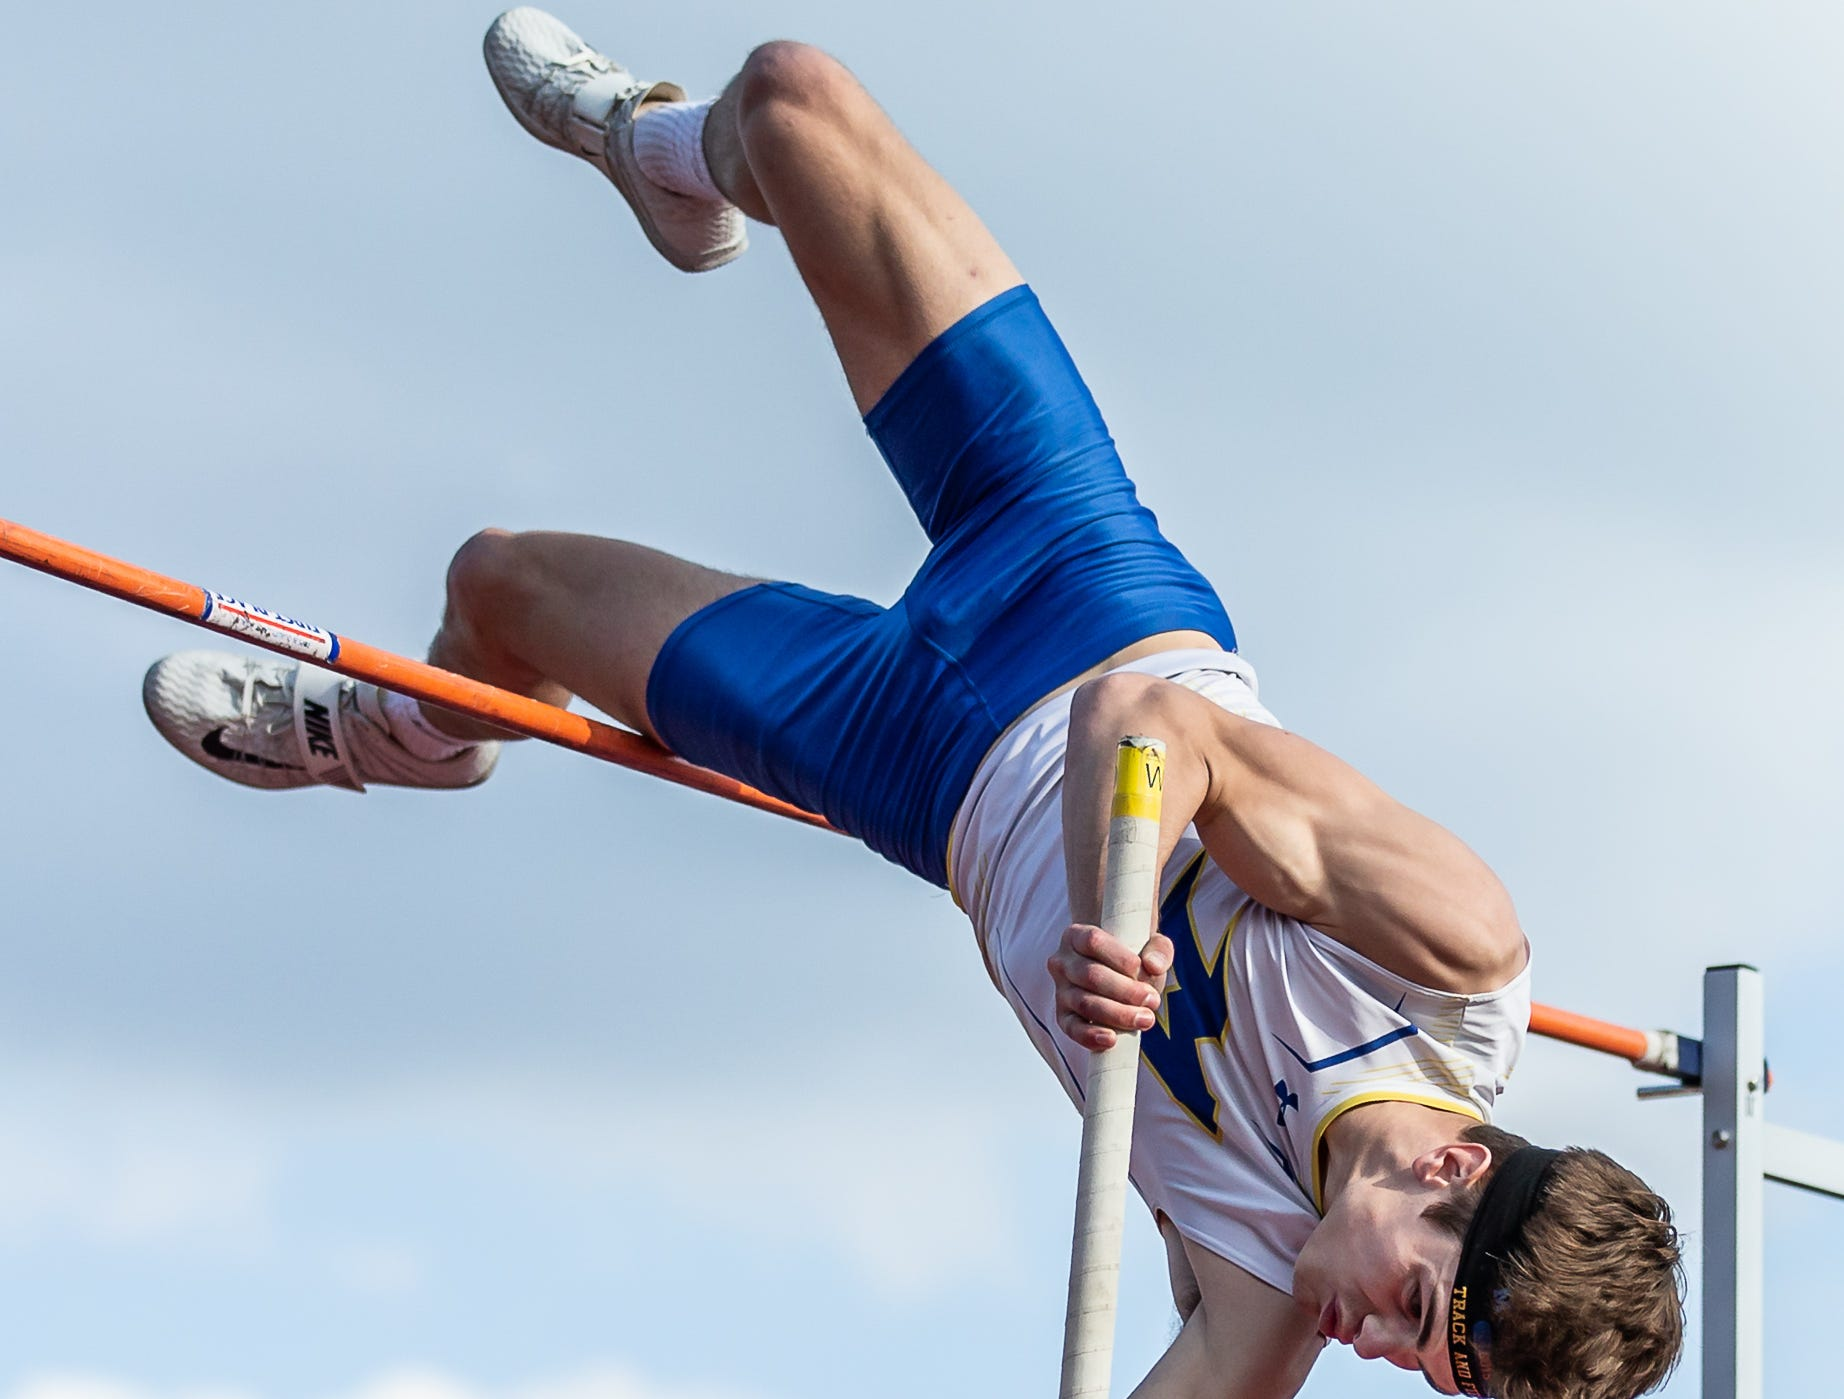 Mukwonago senior Charlie Jungwirth competes in the pole vault at the 2019 Myrhum Invitational track and field meet in Hartland on Saturday, May 4. Jungwirth won the event with a vault of 14-6.00.